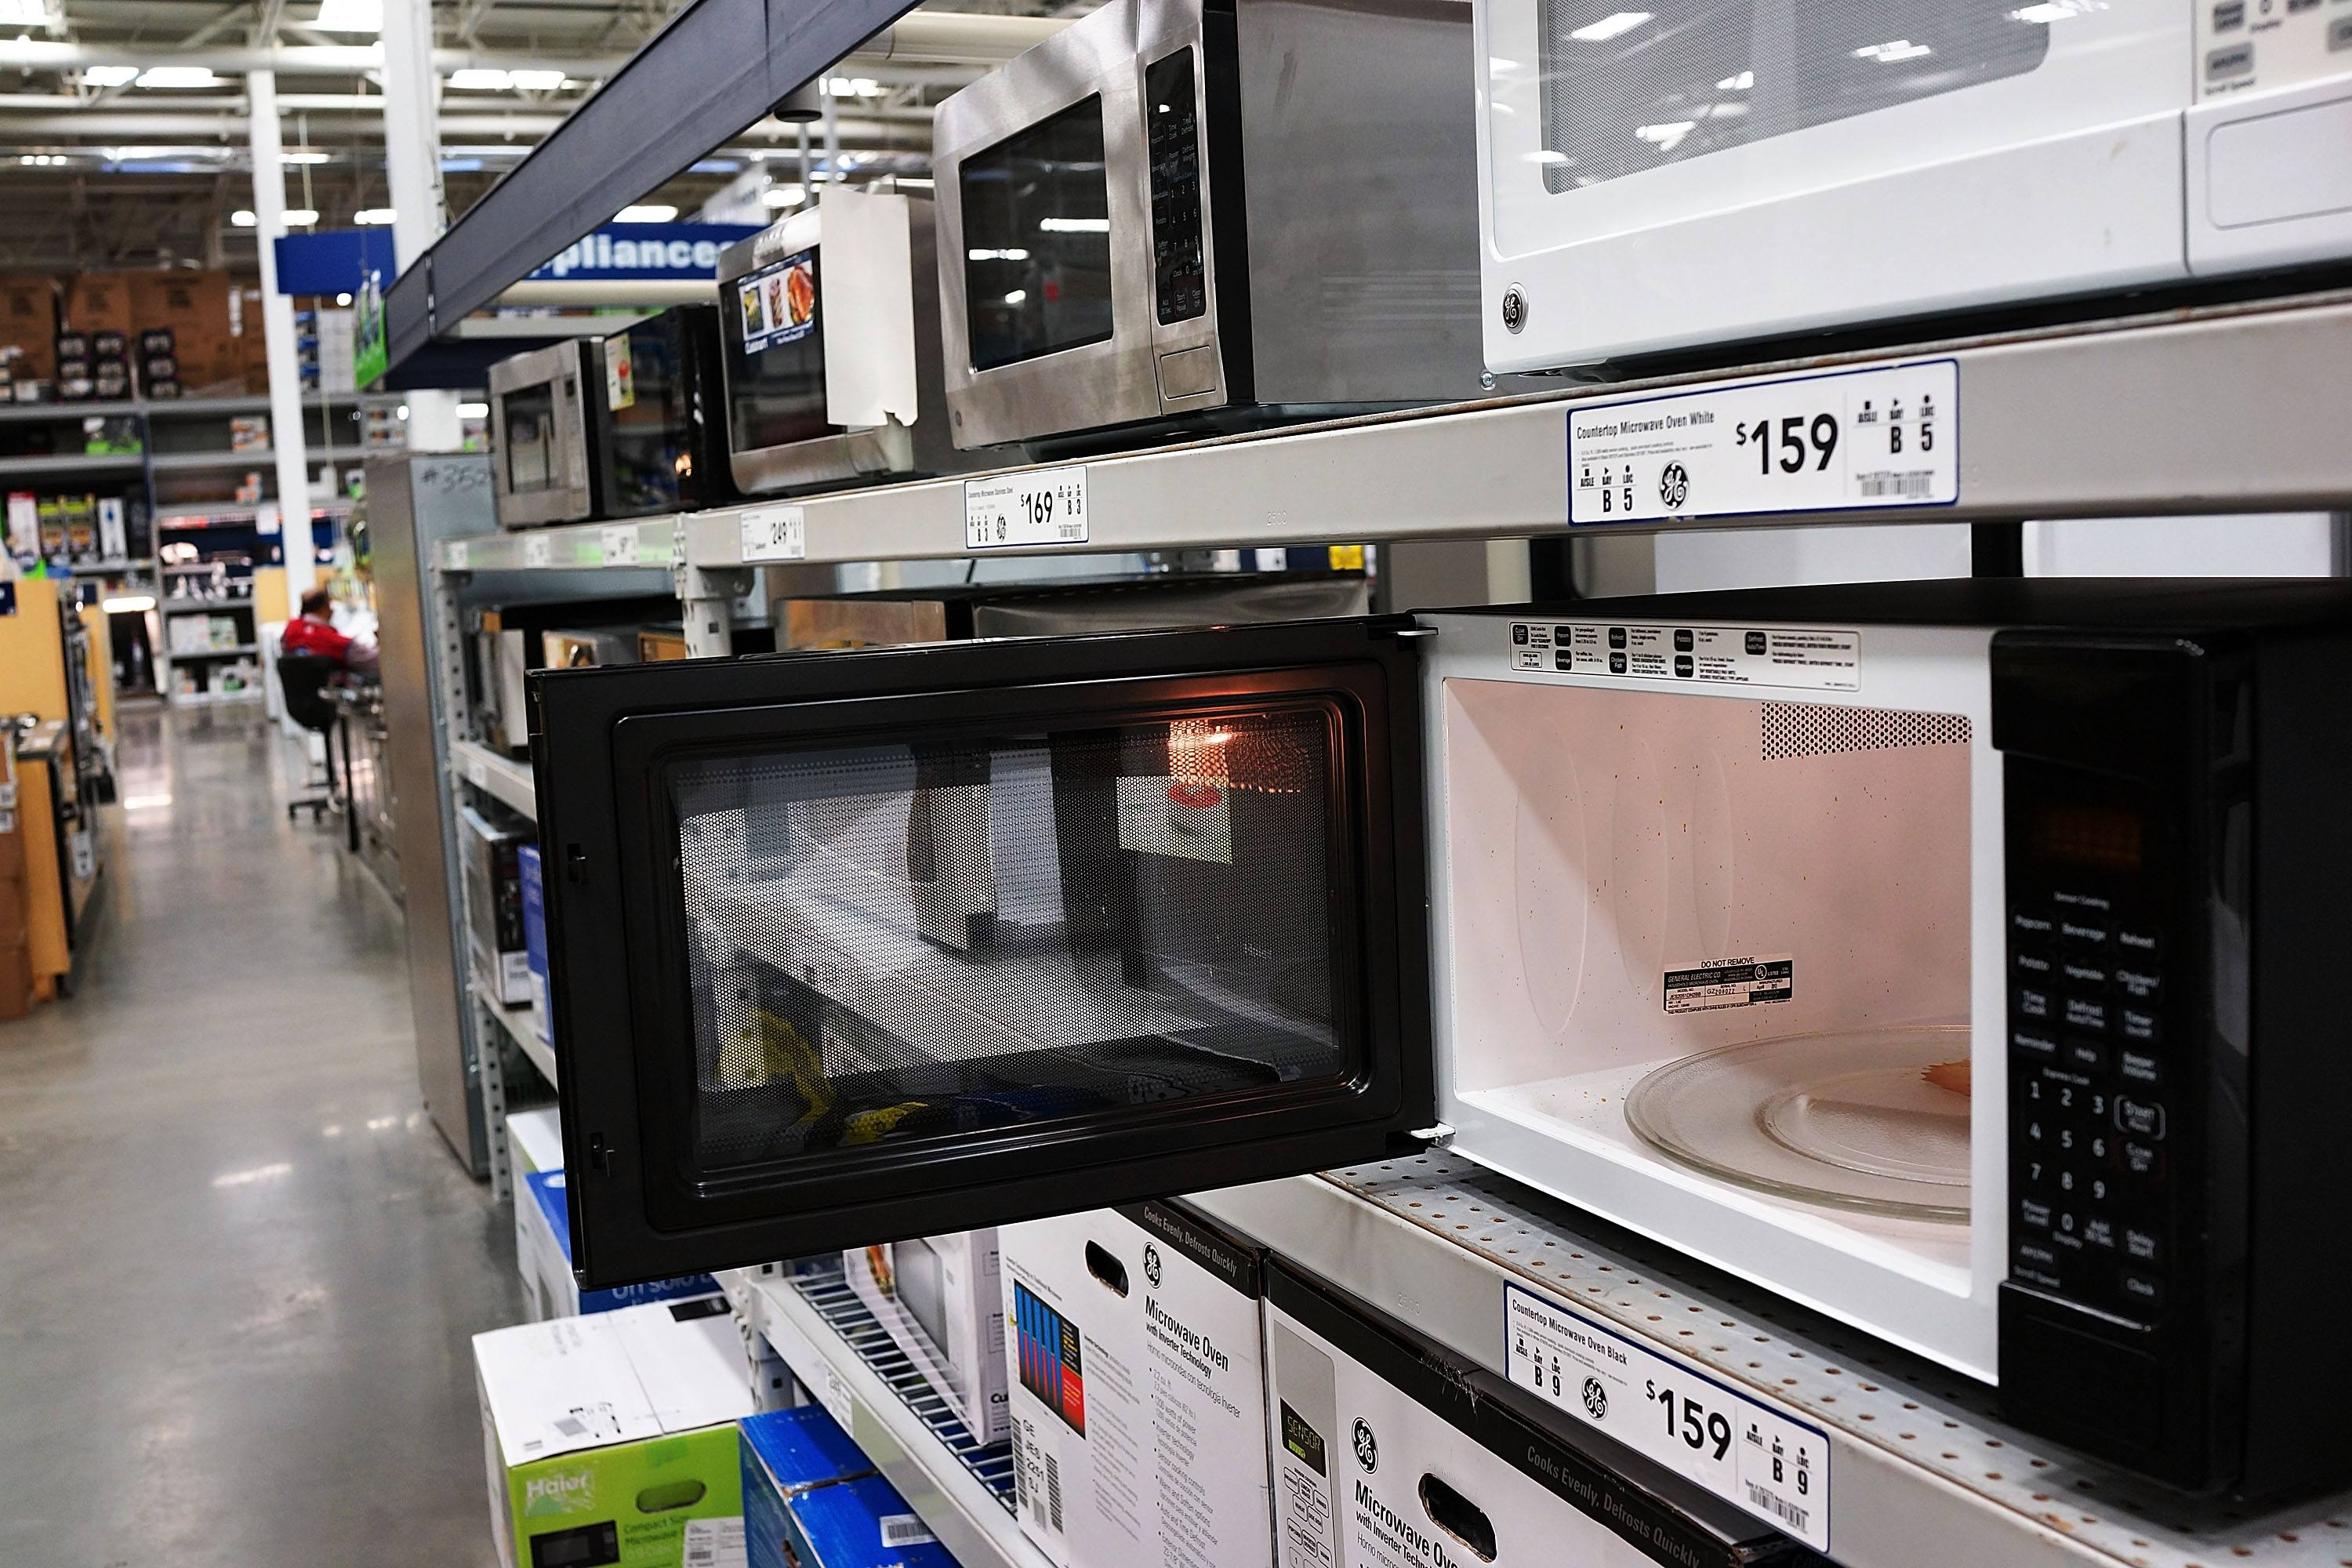 Microwave ovens are on display in a home furnishing store